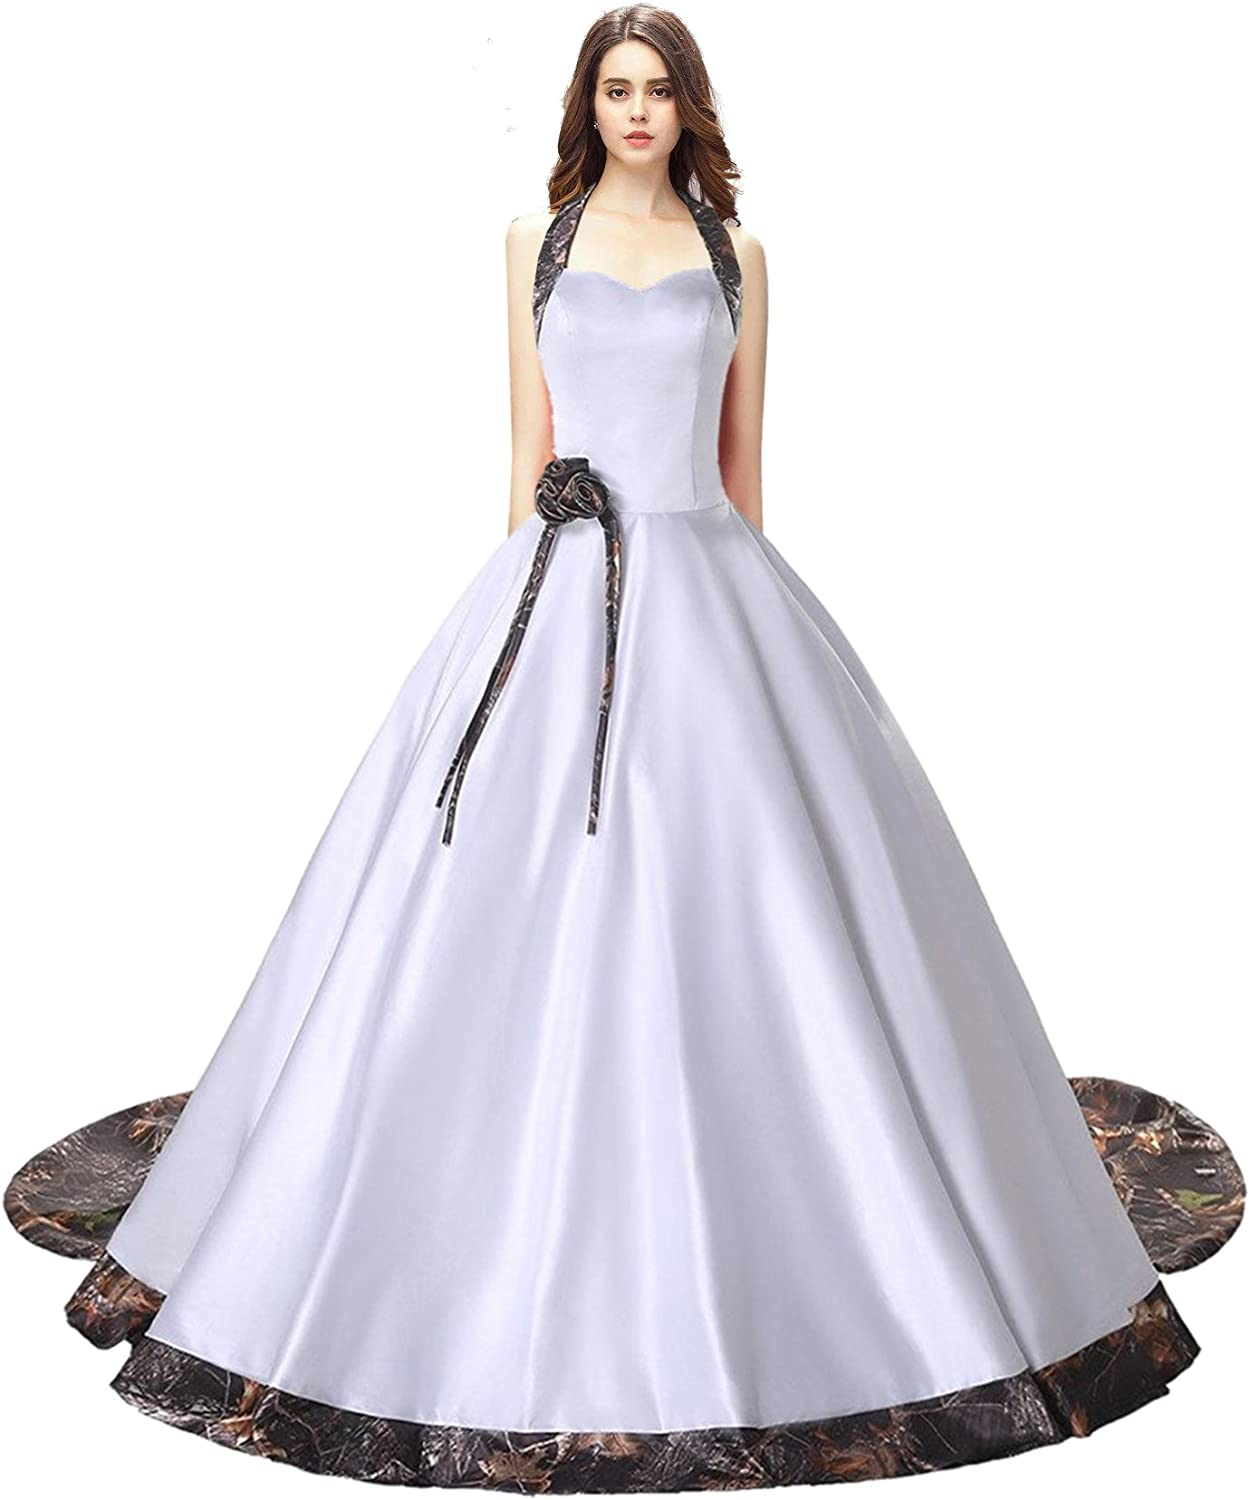 FASHION DRESS 2017 Camouflage Ball Gown Wedding Bridal Dresses Prom Quinceanera 002